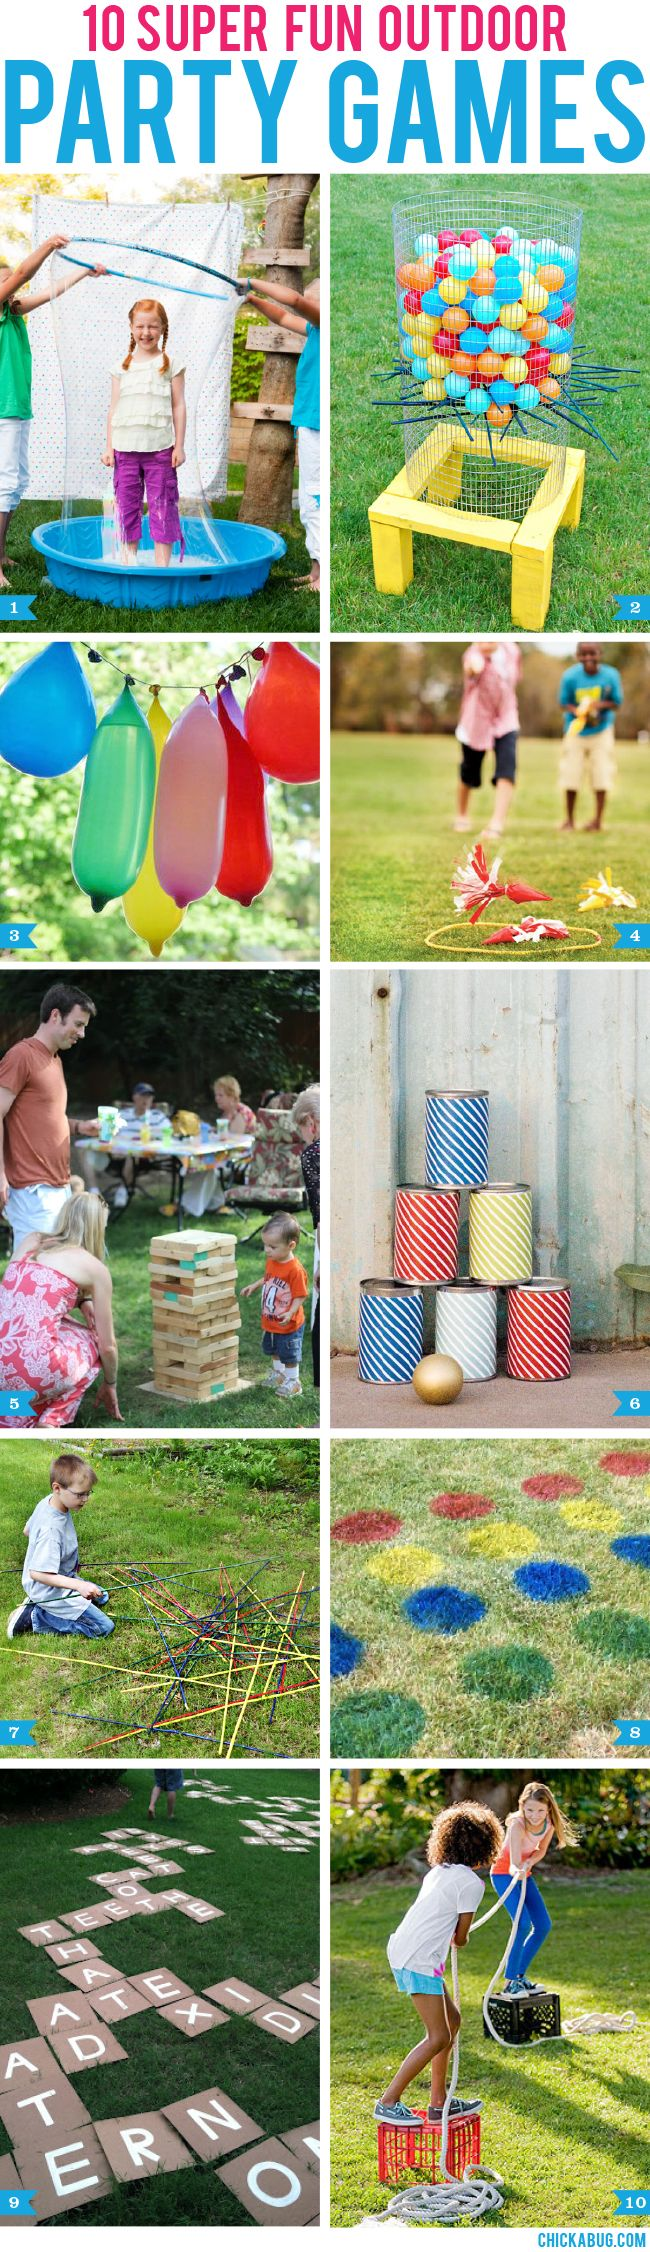 10 super fun birthday party outdoor games! www.kylekellymagic.com